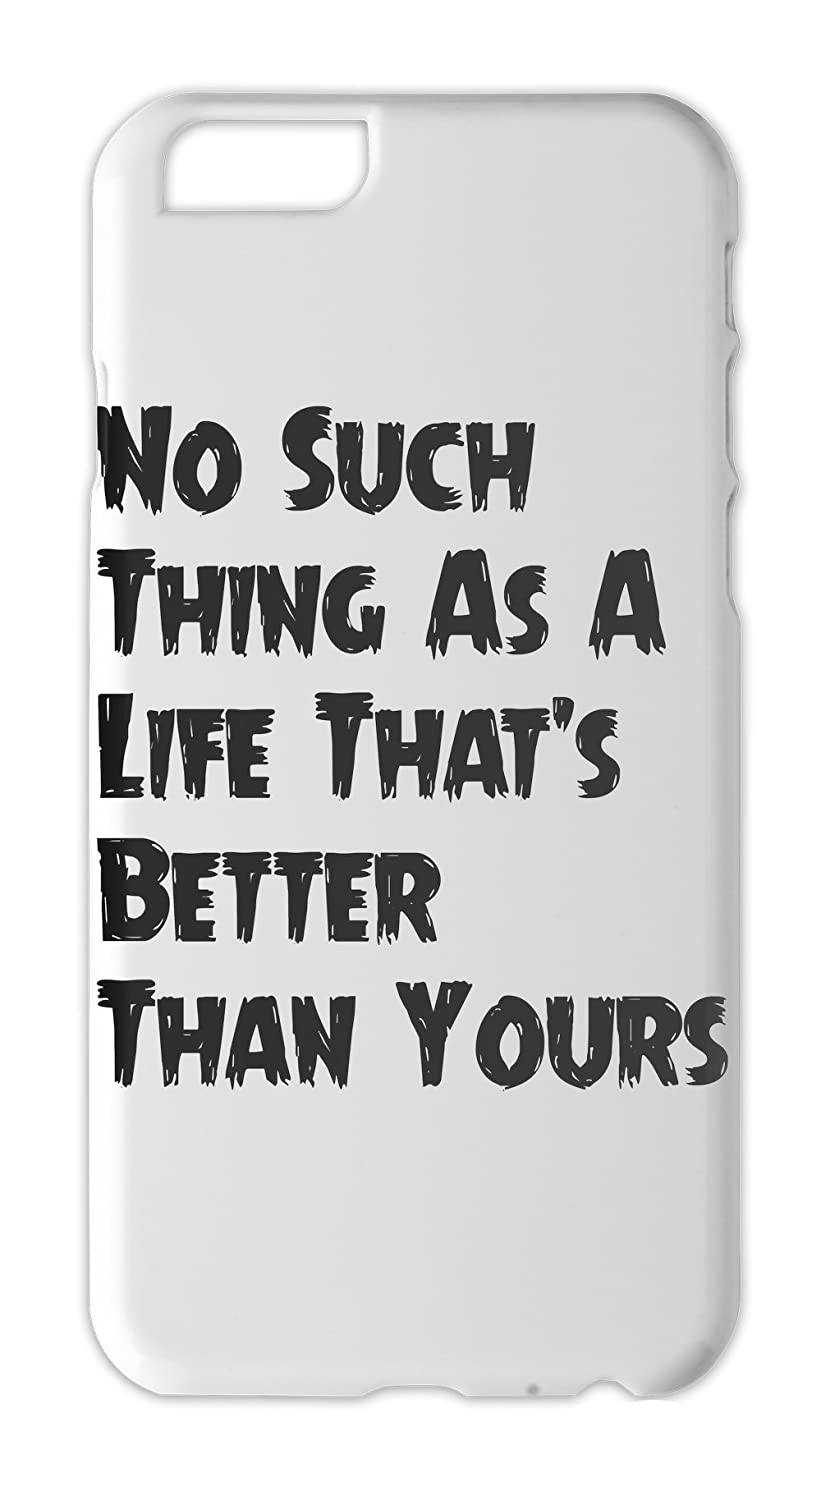 No Such Thing As A Life Thats Better Than Yours Iphone 6 Plus Case